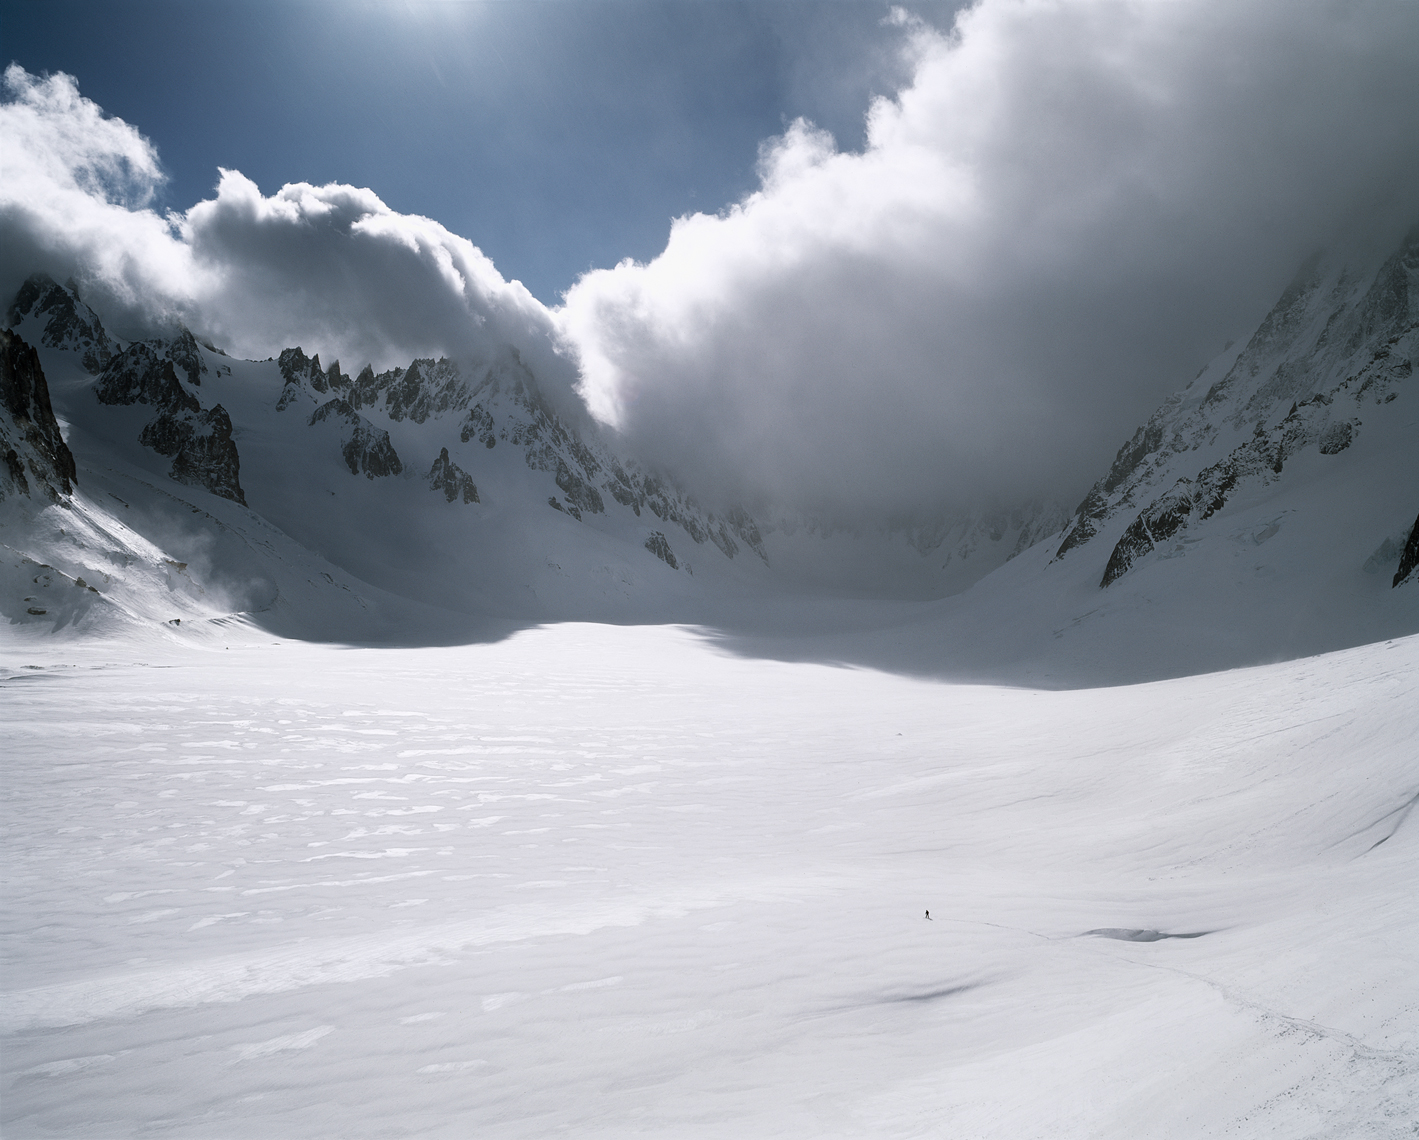 Jon Wyatt Photography - Snowboarder on the Glacier d